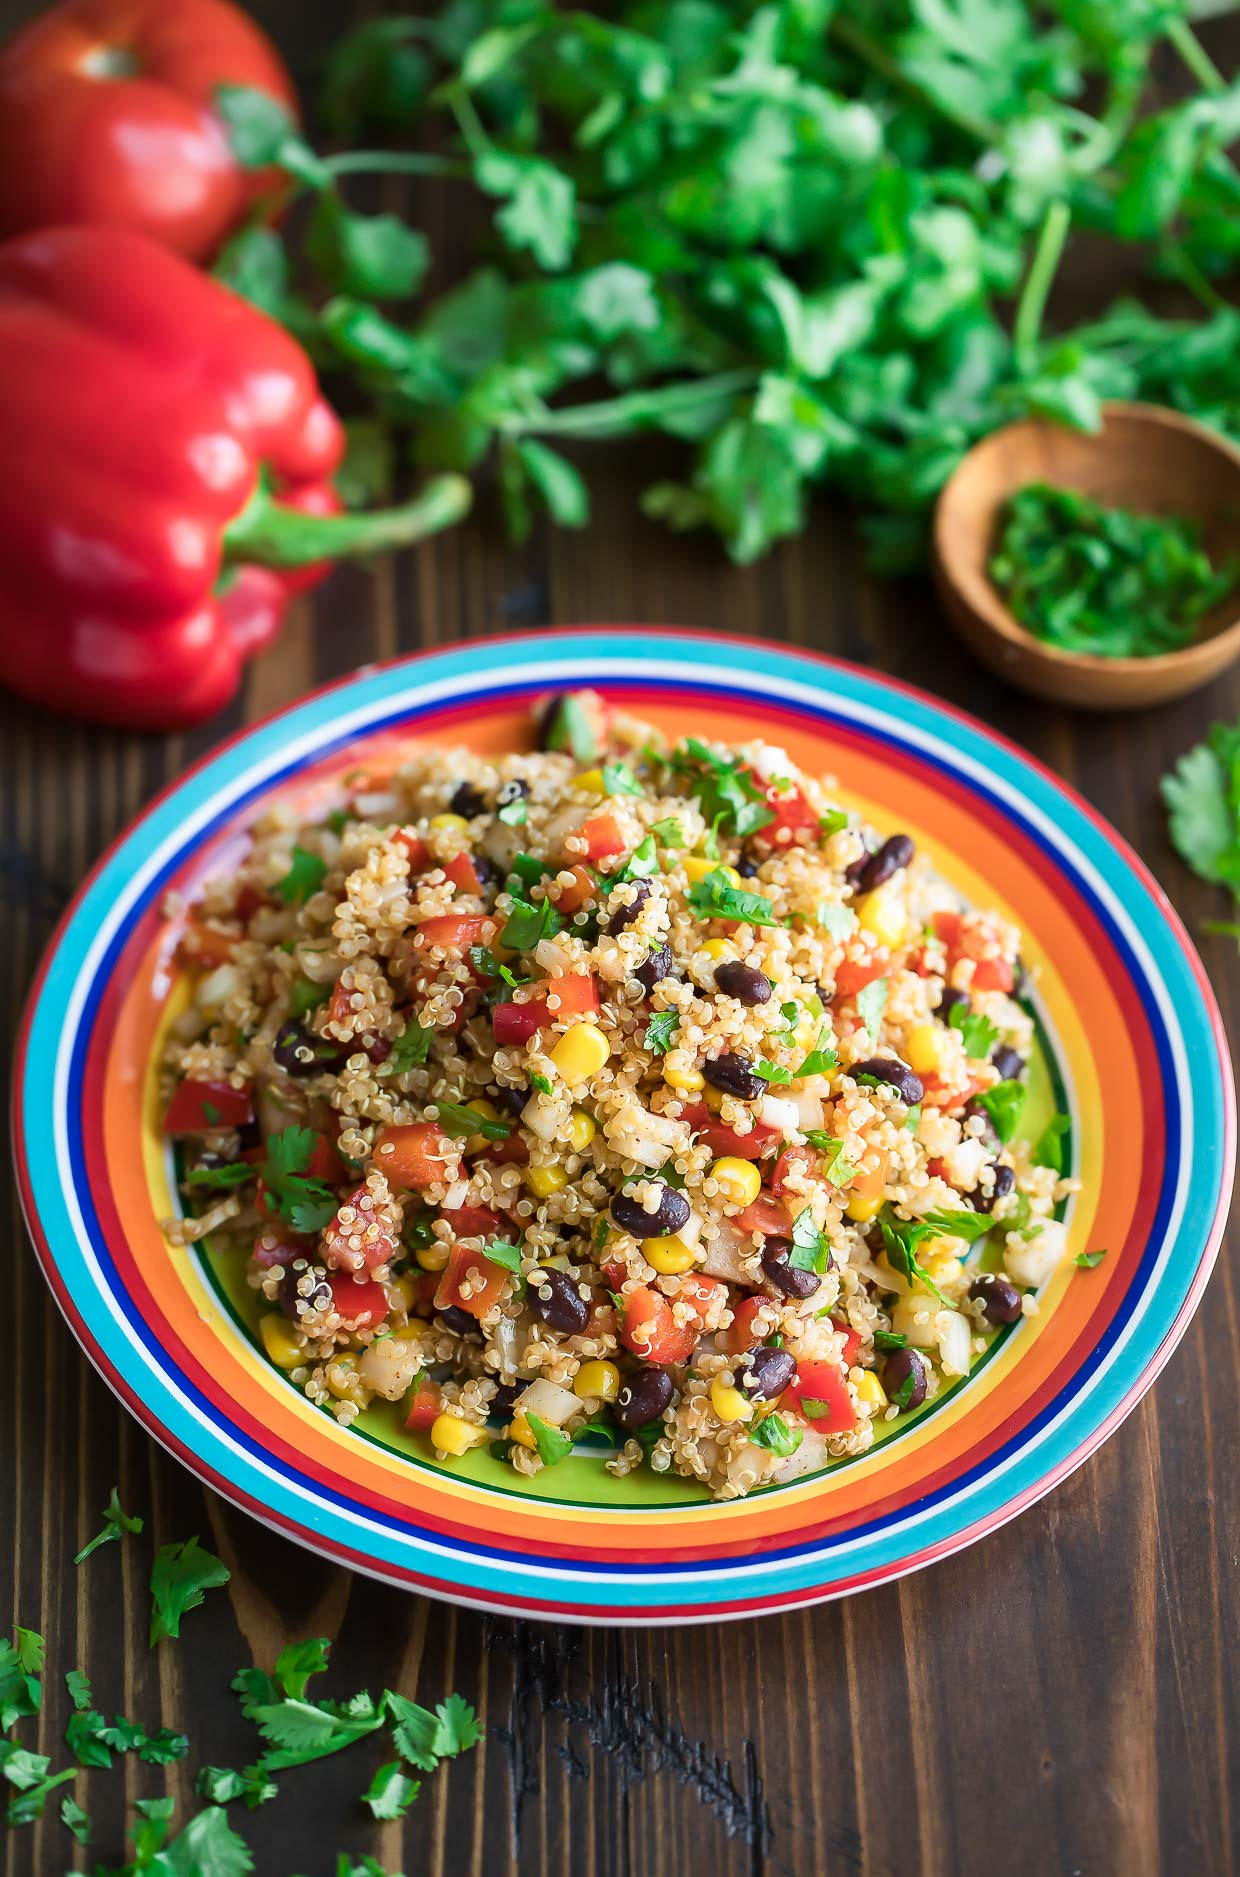 Mexican Quinoa Salad with Chili Lime Dressing